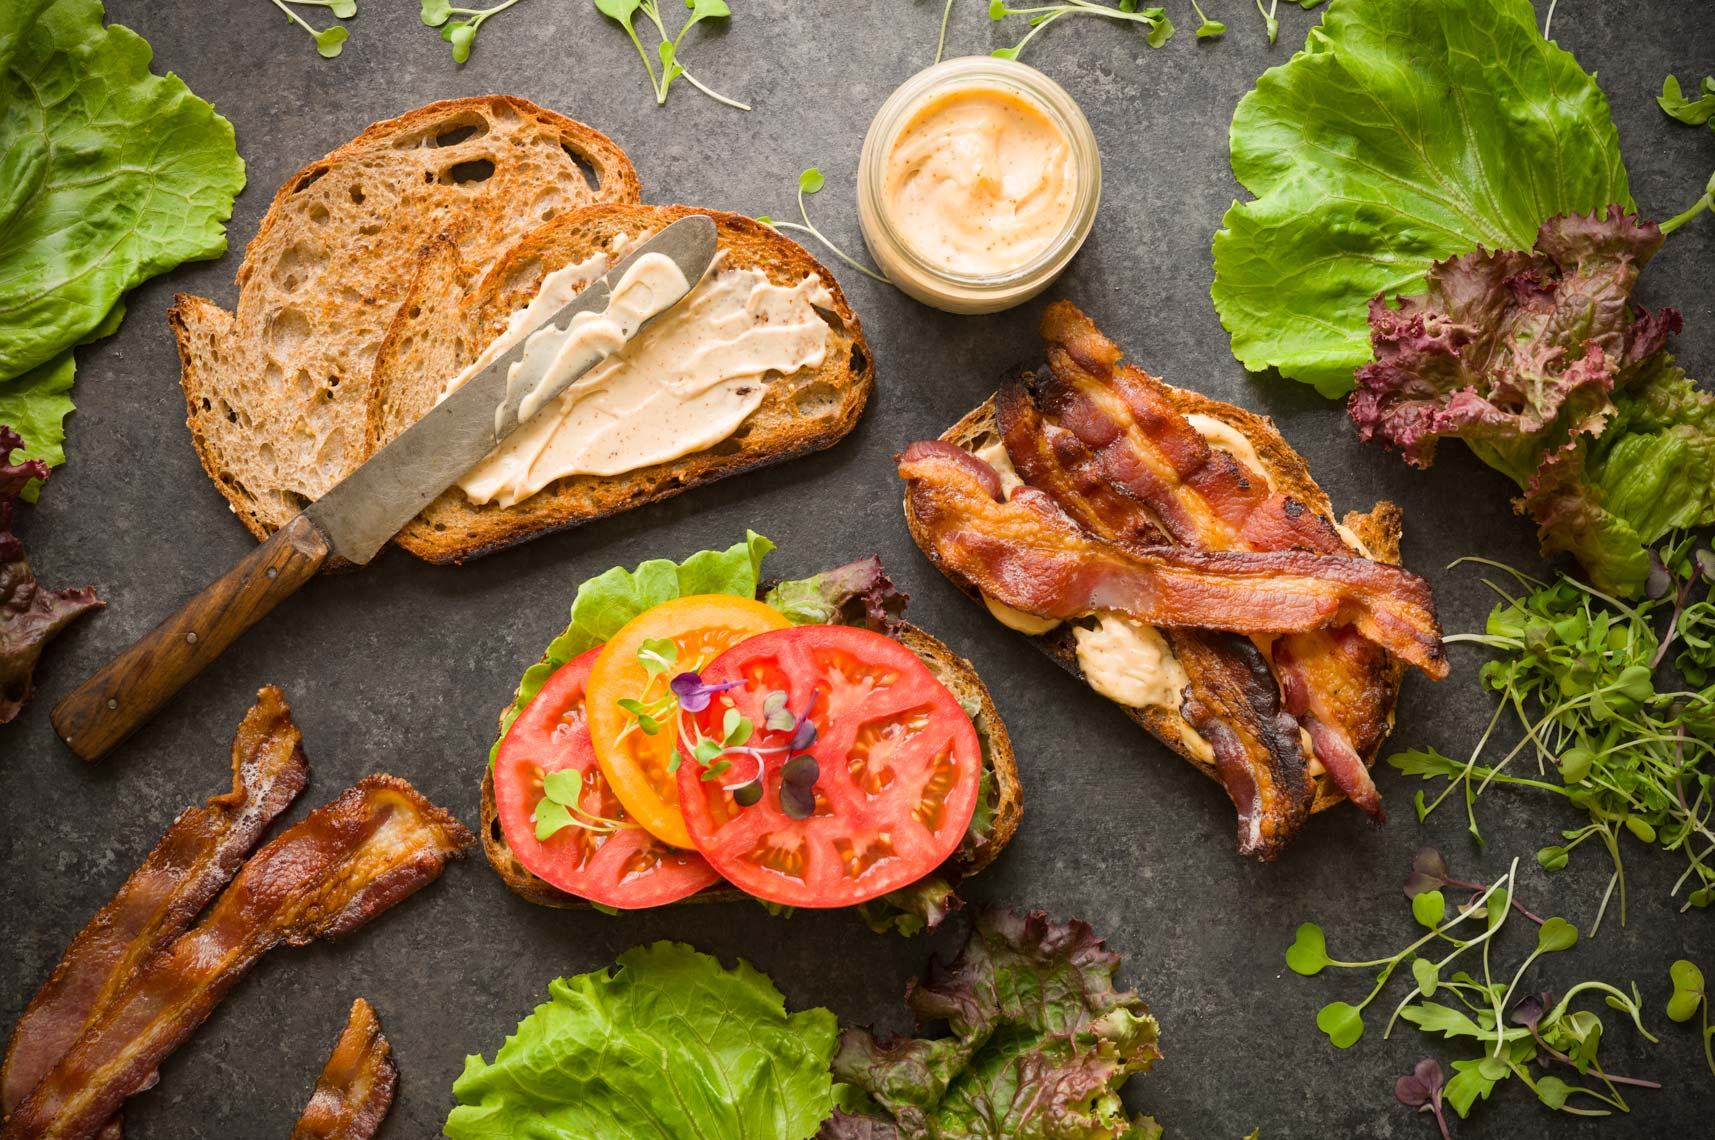 BLT Sandwiches  -  Bucks County, PA Food Photographer - Farm To Table